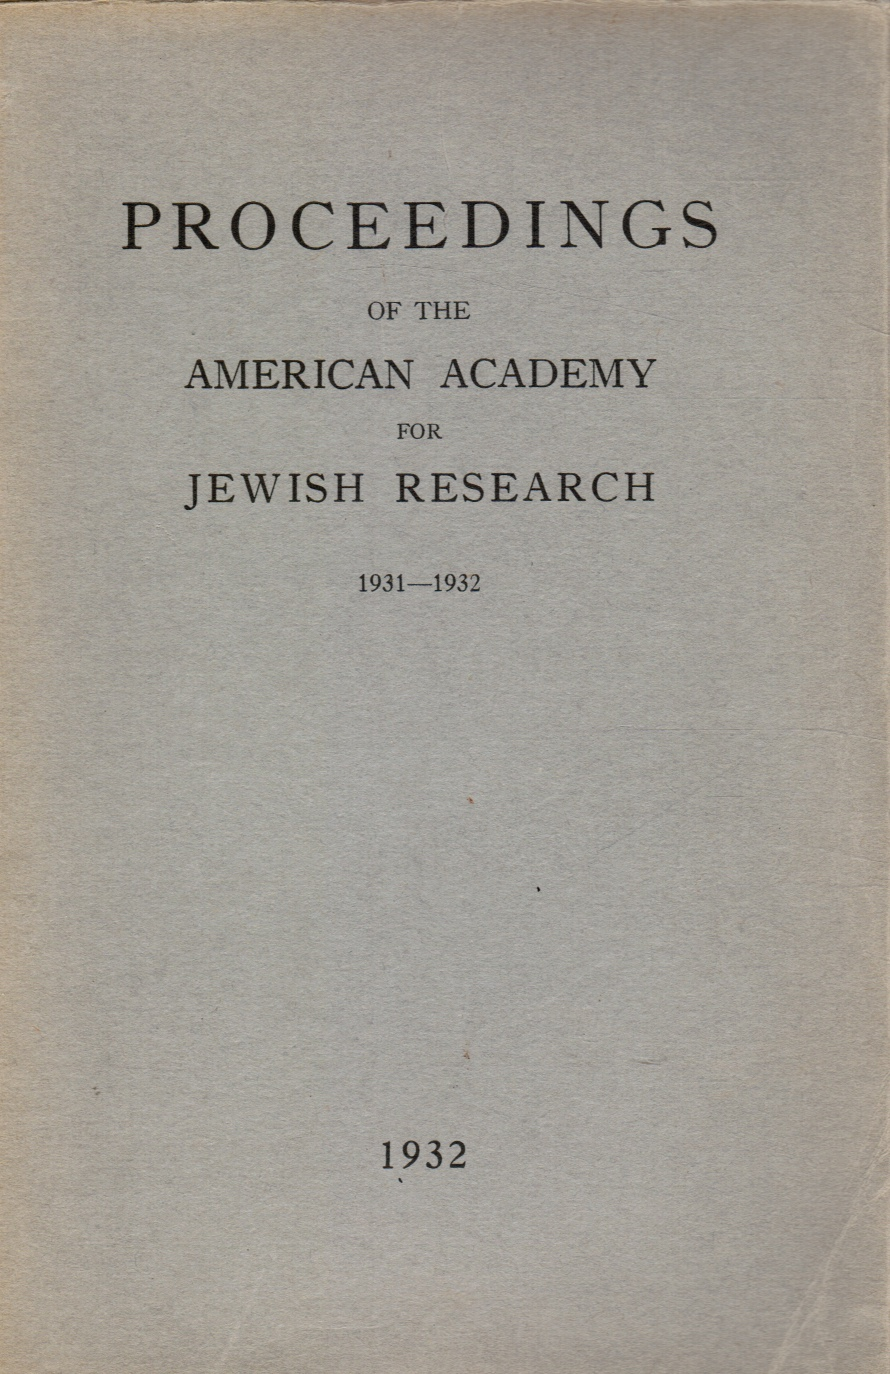 Image for Proceedings on the American Academy for Jewish Research: 1931-1932